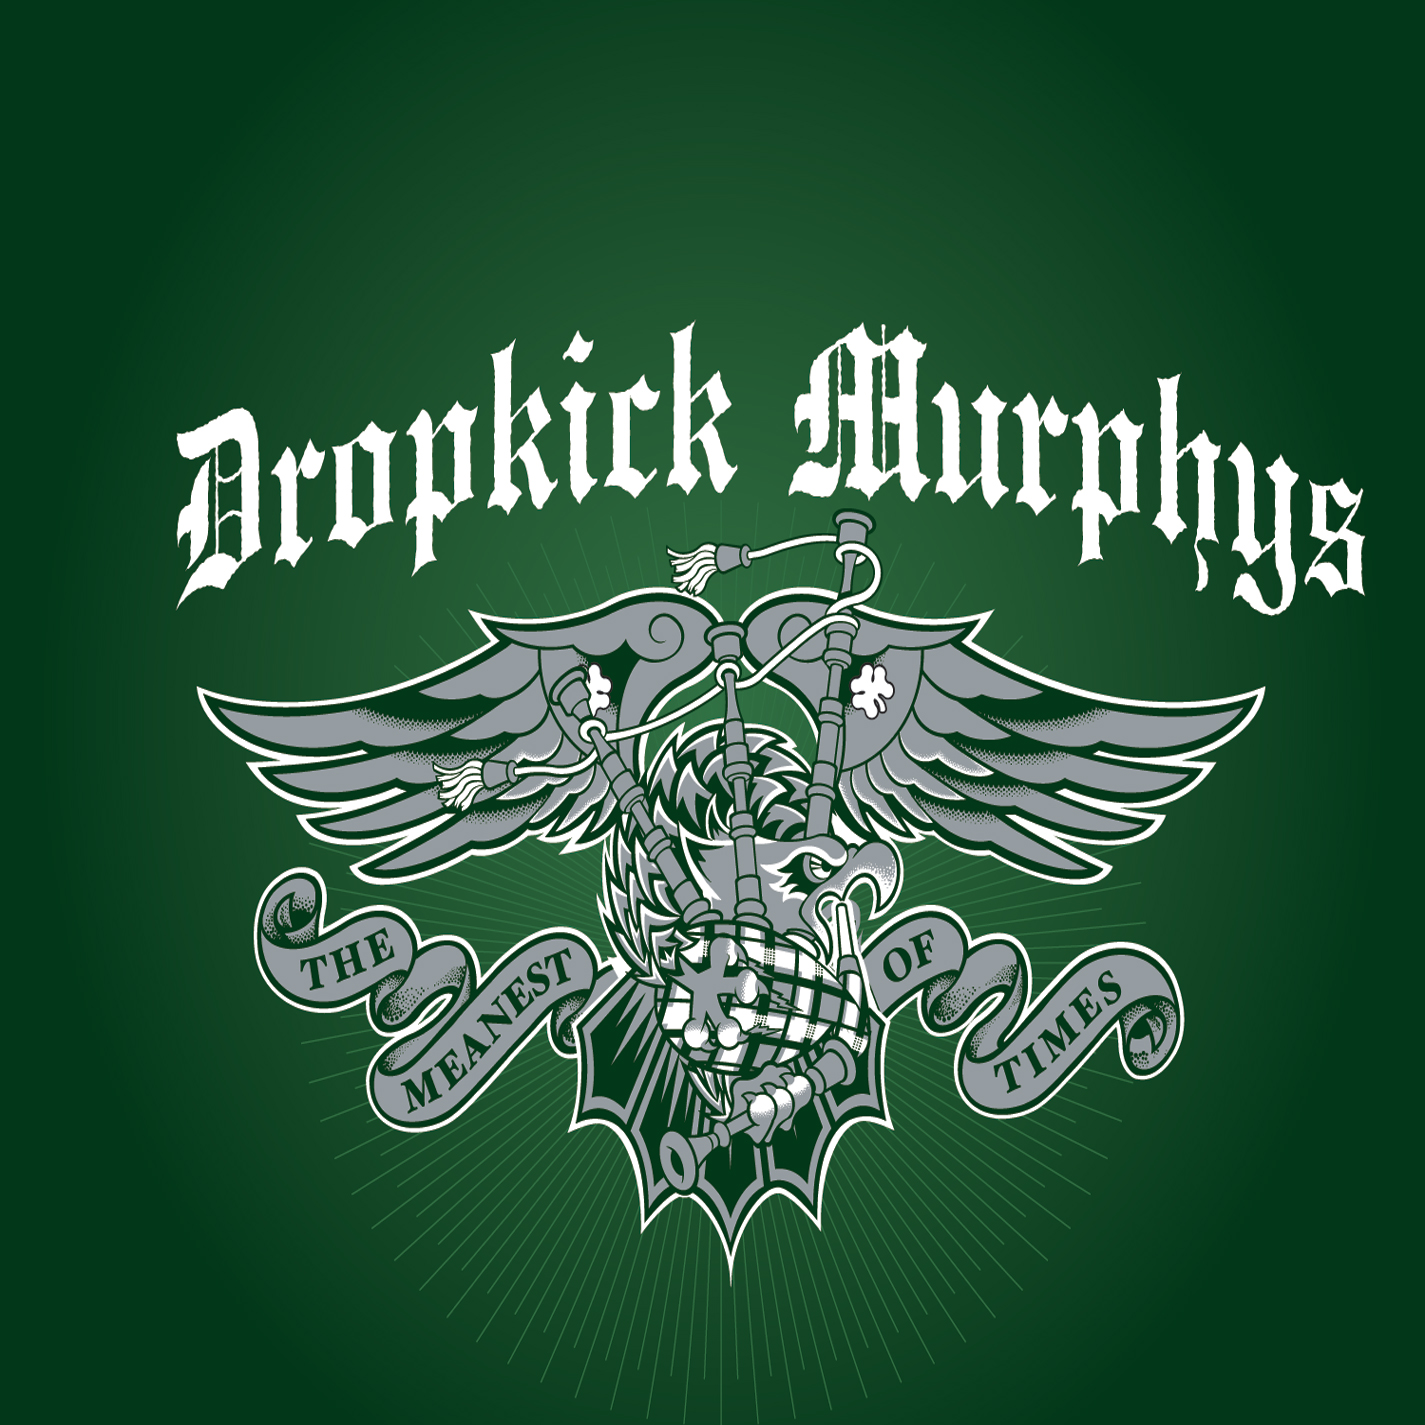 Dropkick Murphys Wallpaper music band Punkrock Irish Folk Hardcore - Lowbird.com - Der lowe Bird fängt den Wurm!